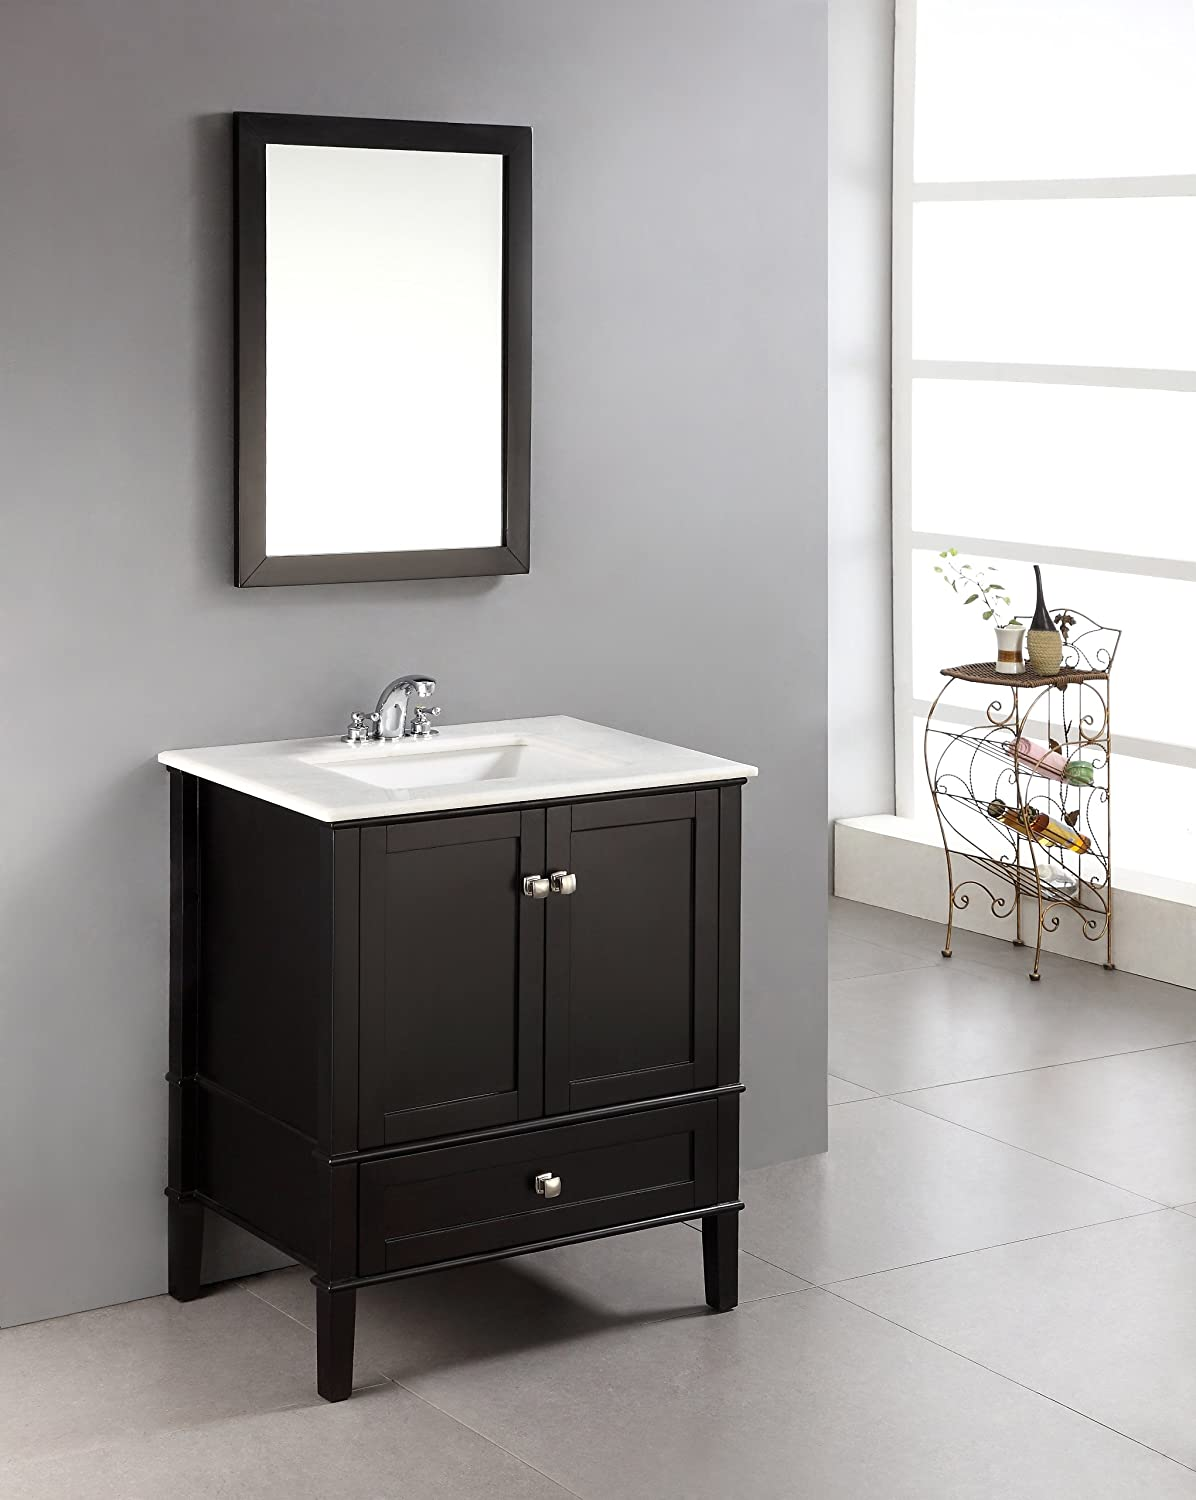 top center vanity inch bathroom f cabinet sink luxury marble left black of side vanities